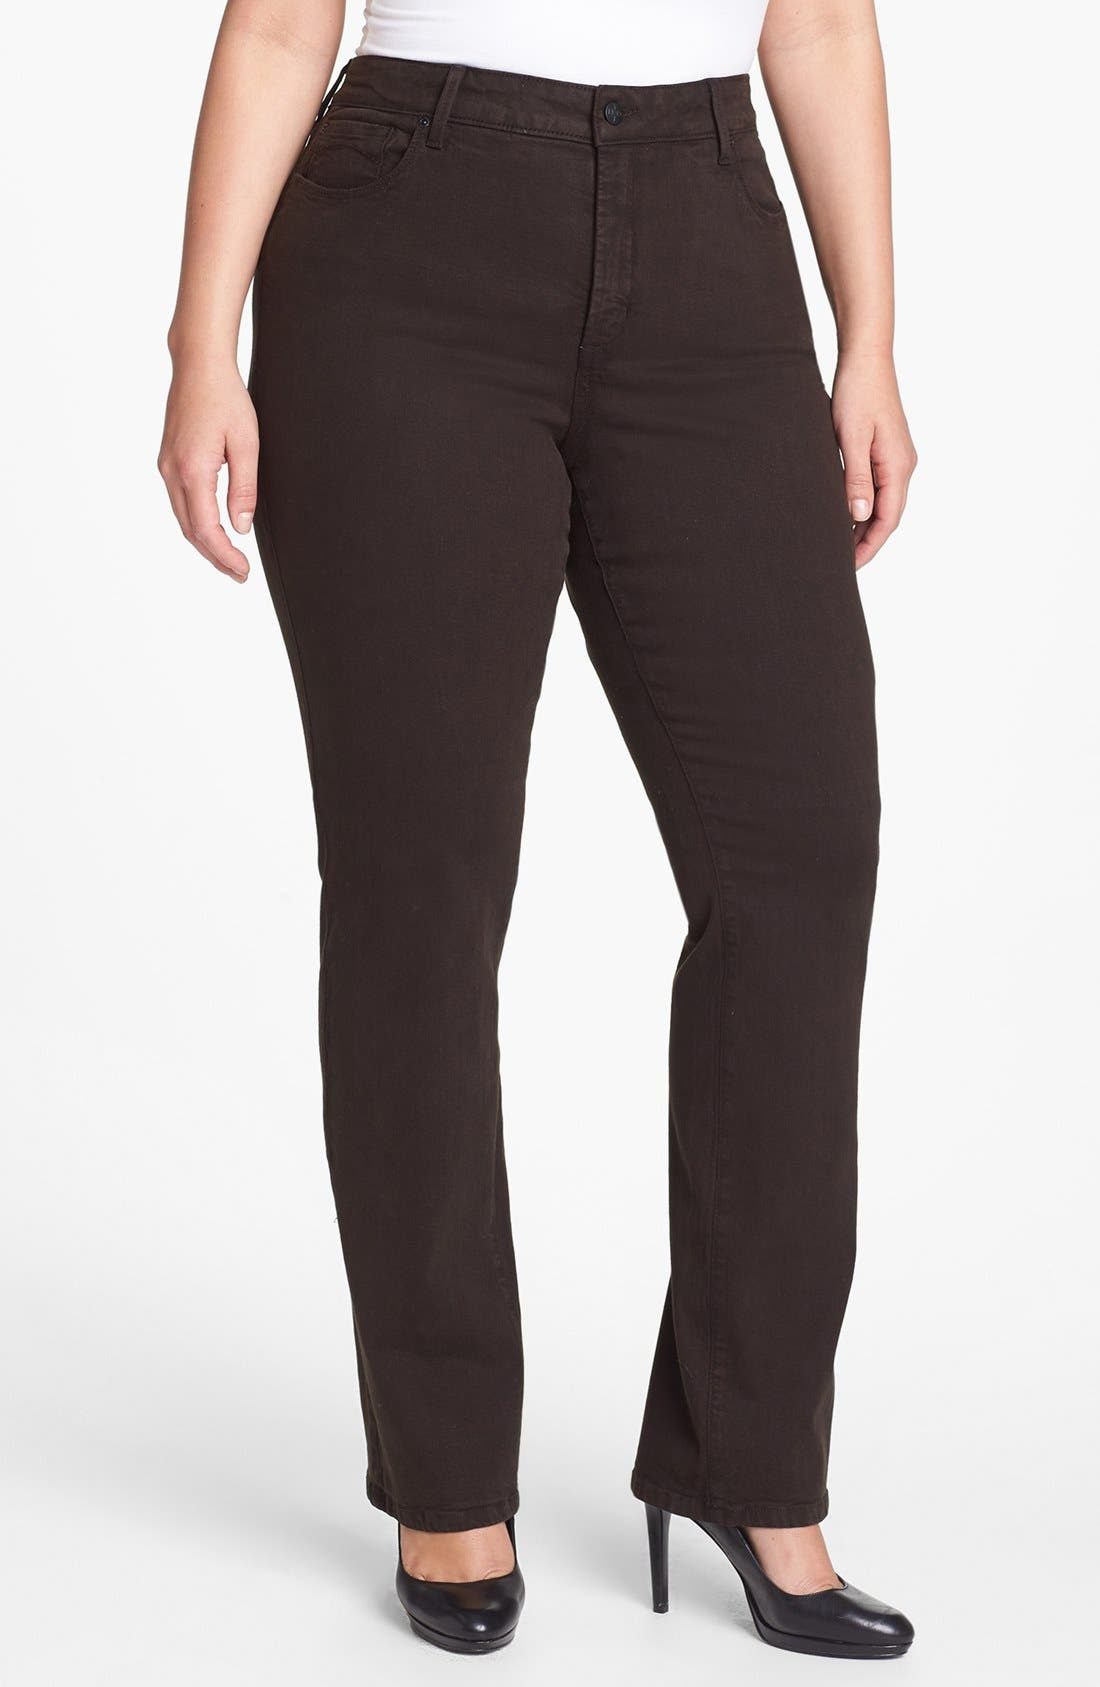 Main Image - NYDJ 'Marilyn' Colored Stretch Straight Jeans (Plus Size)